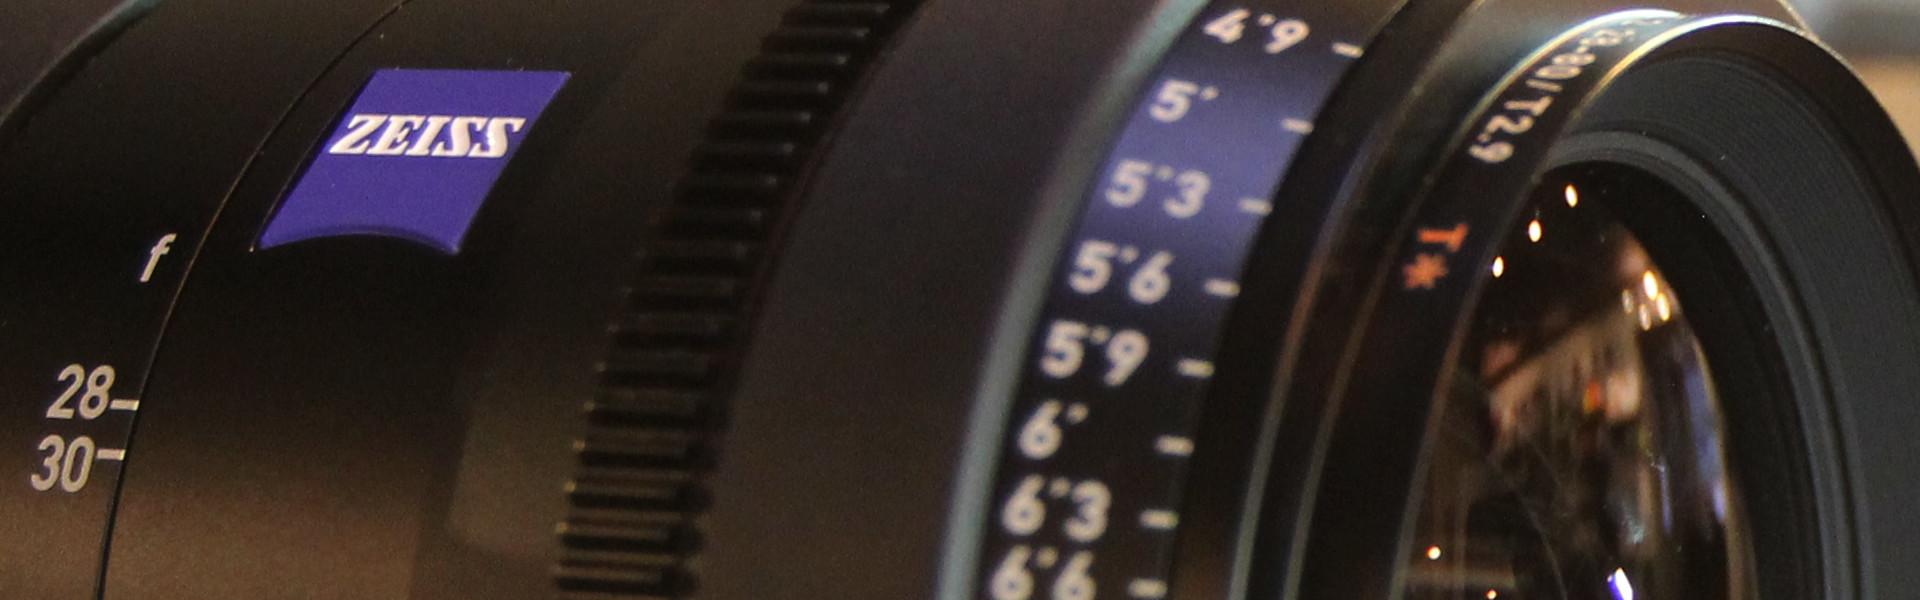 "Header image for article Video: Zeiss Compact Primes on ""The Bicycle"""